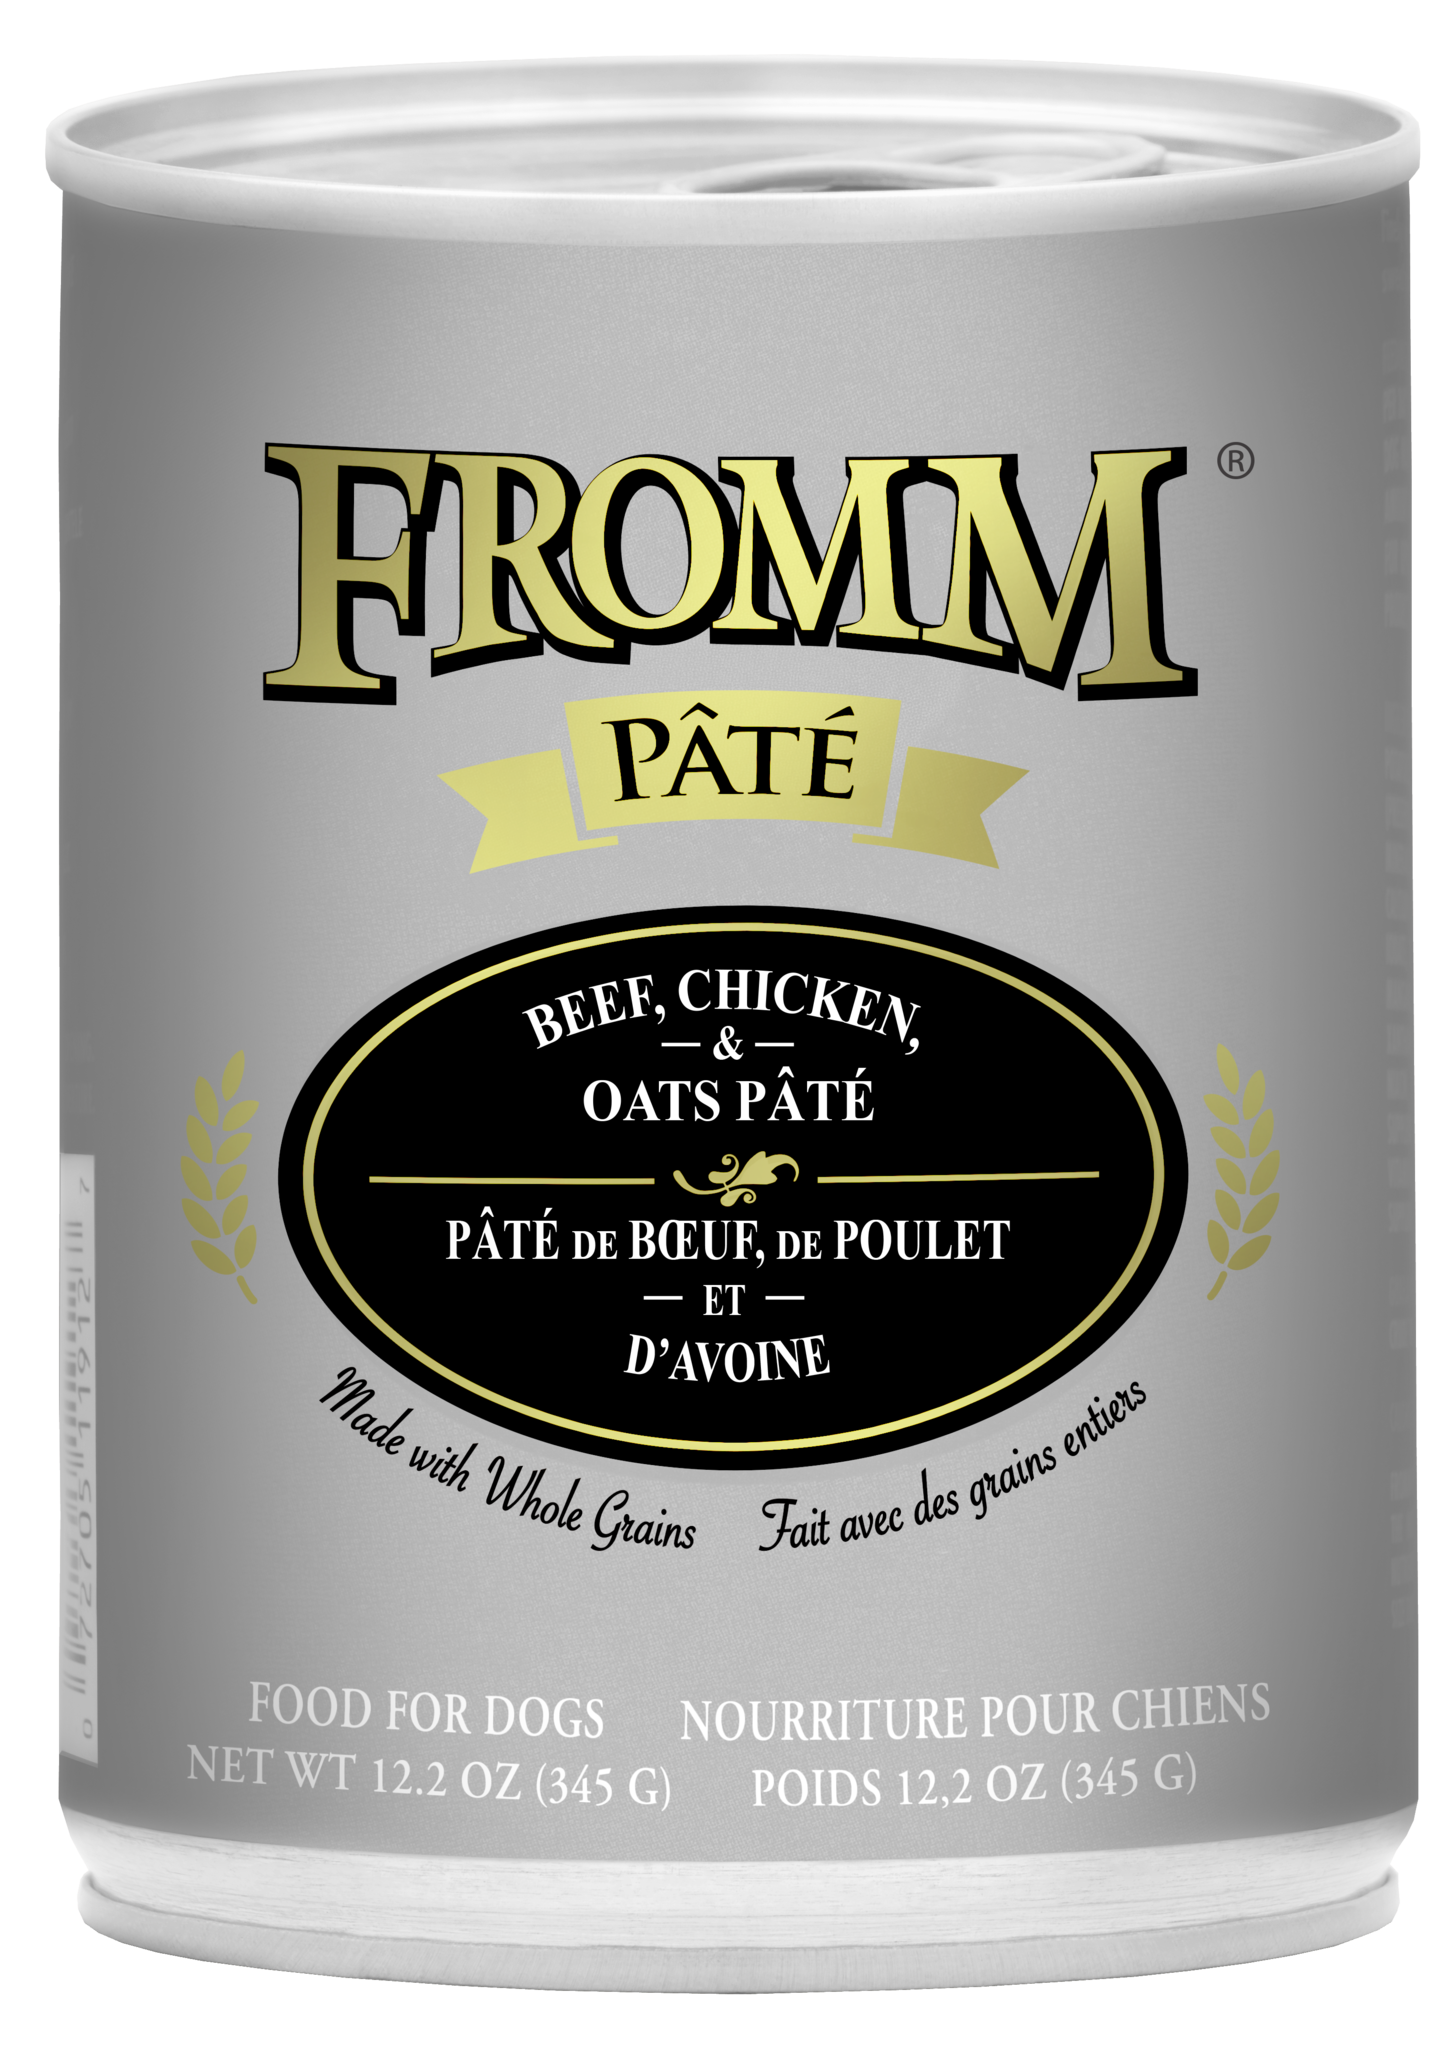 Fromm Fromm Gold Beef, Chicken & Oats Pate Wet Dog Food 12.2oz